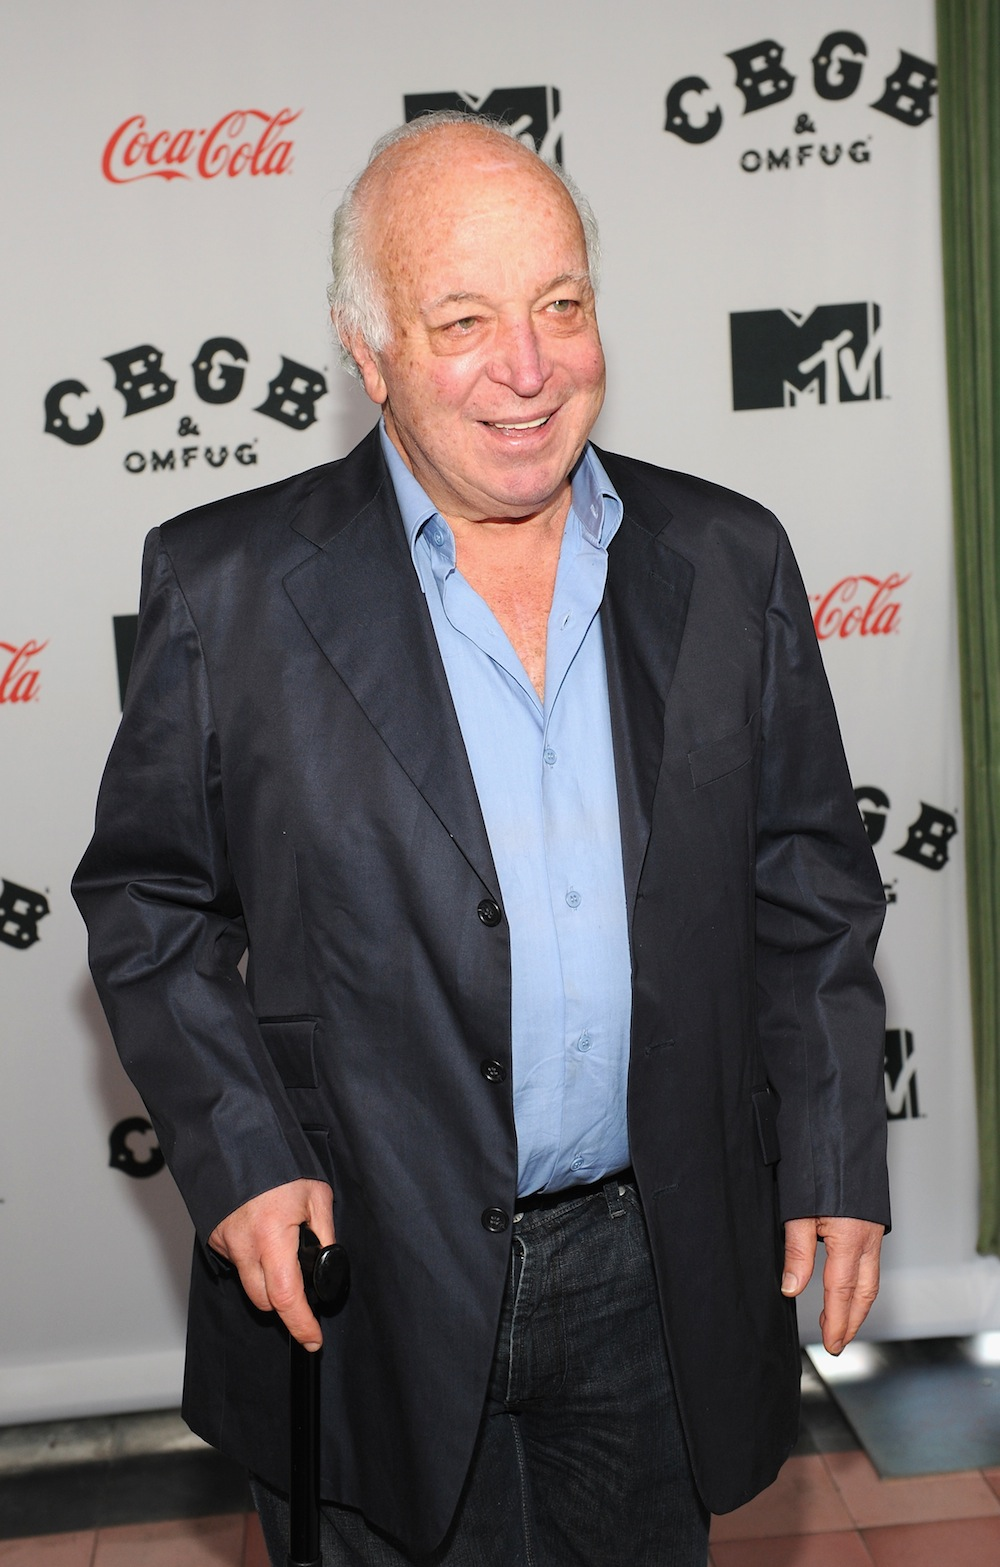 Seymour Stein (Photo: Bryan Bedder)